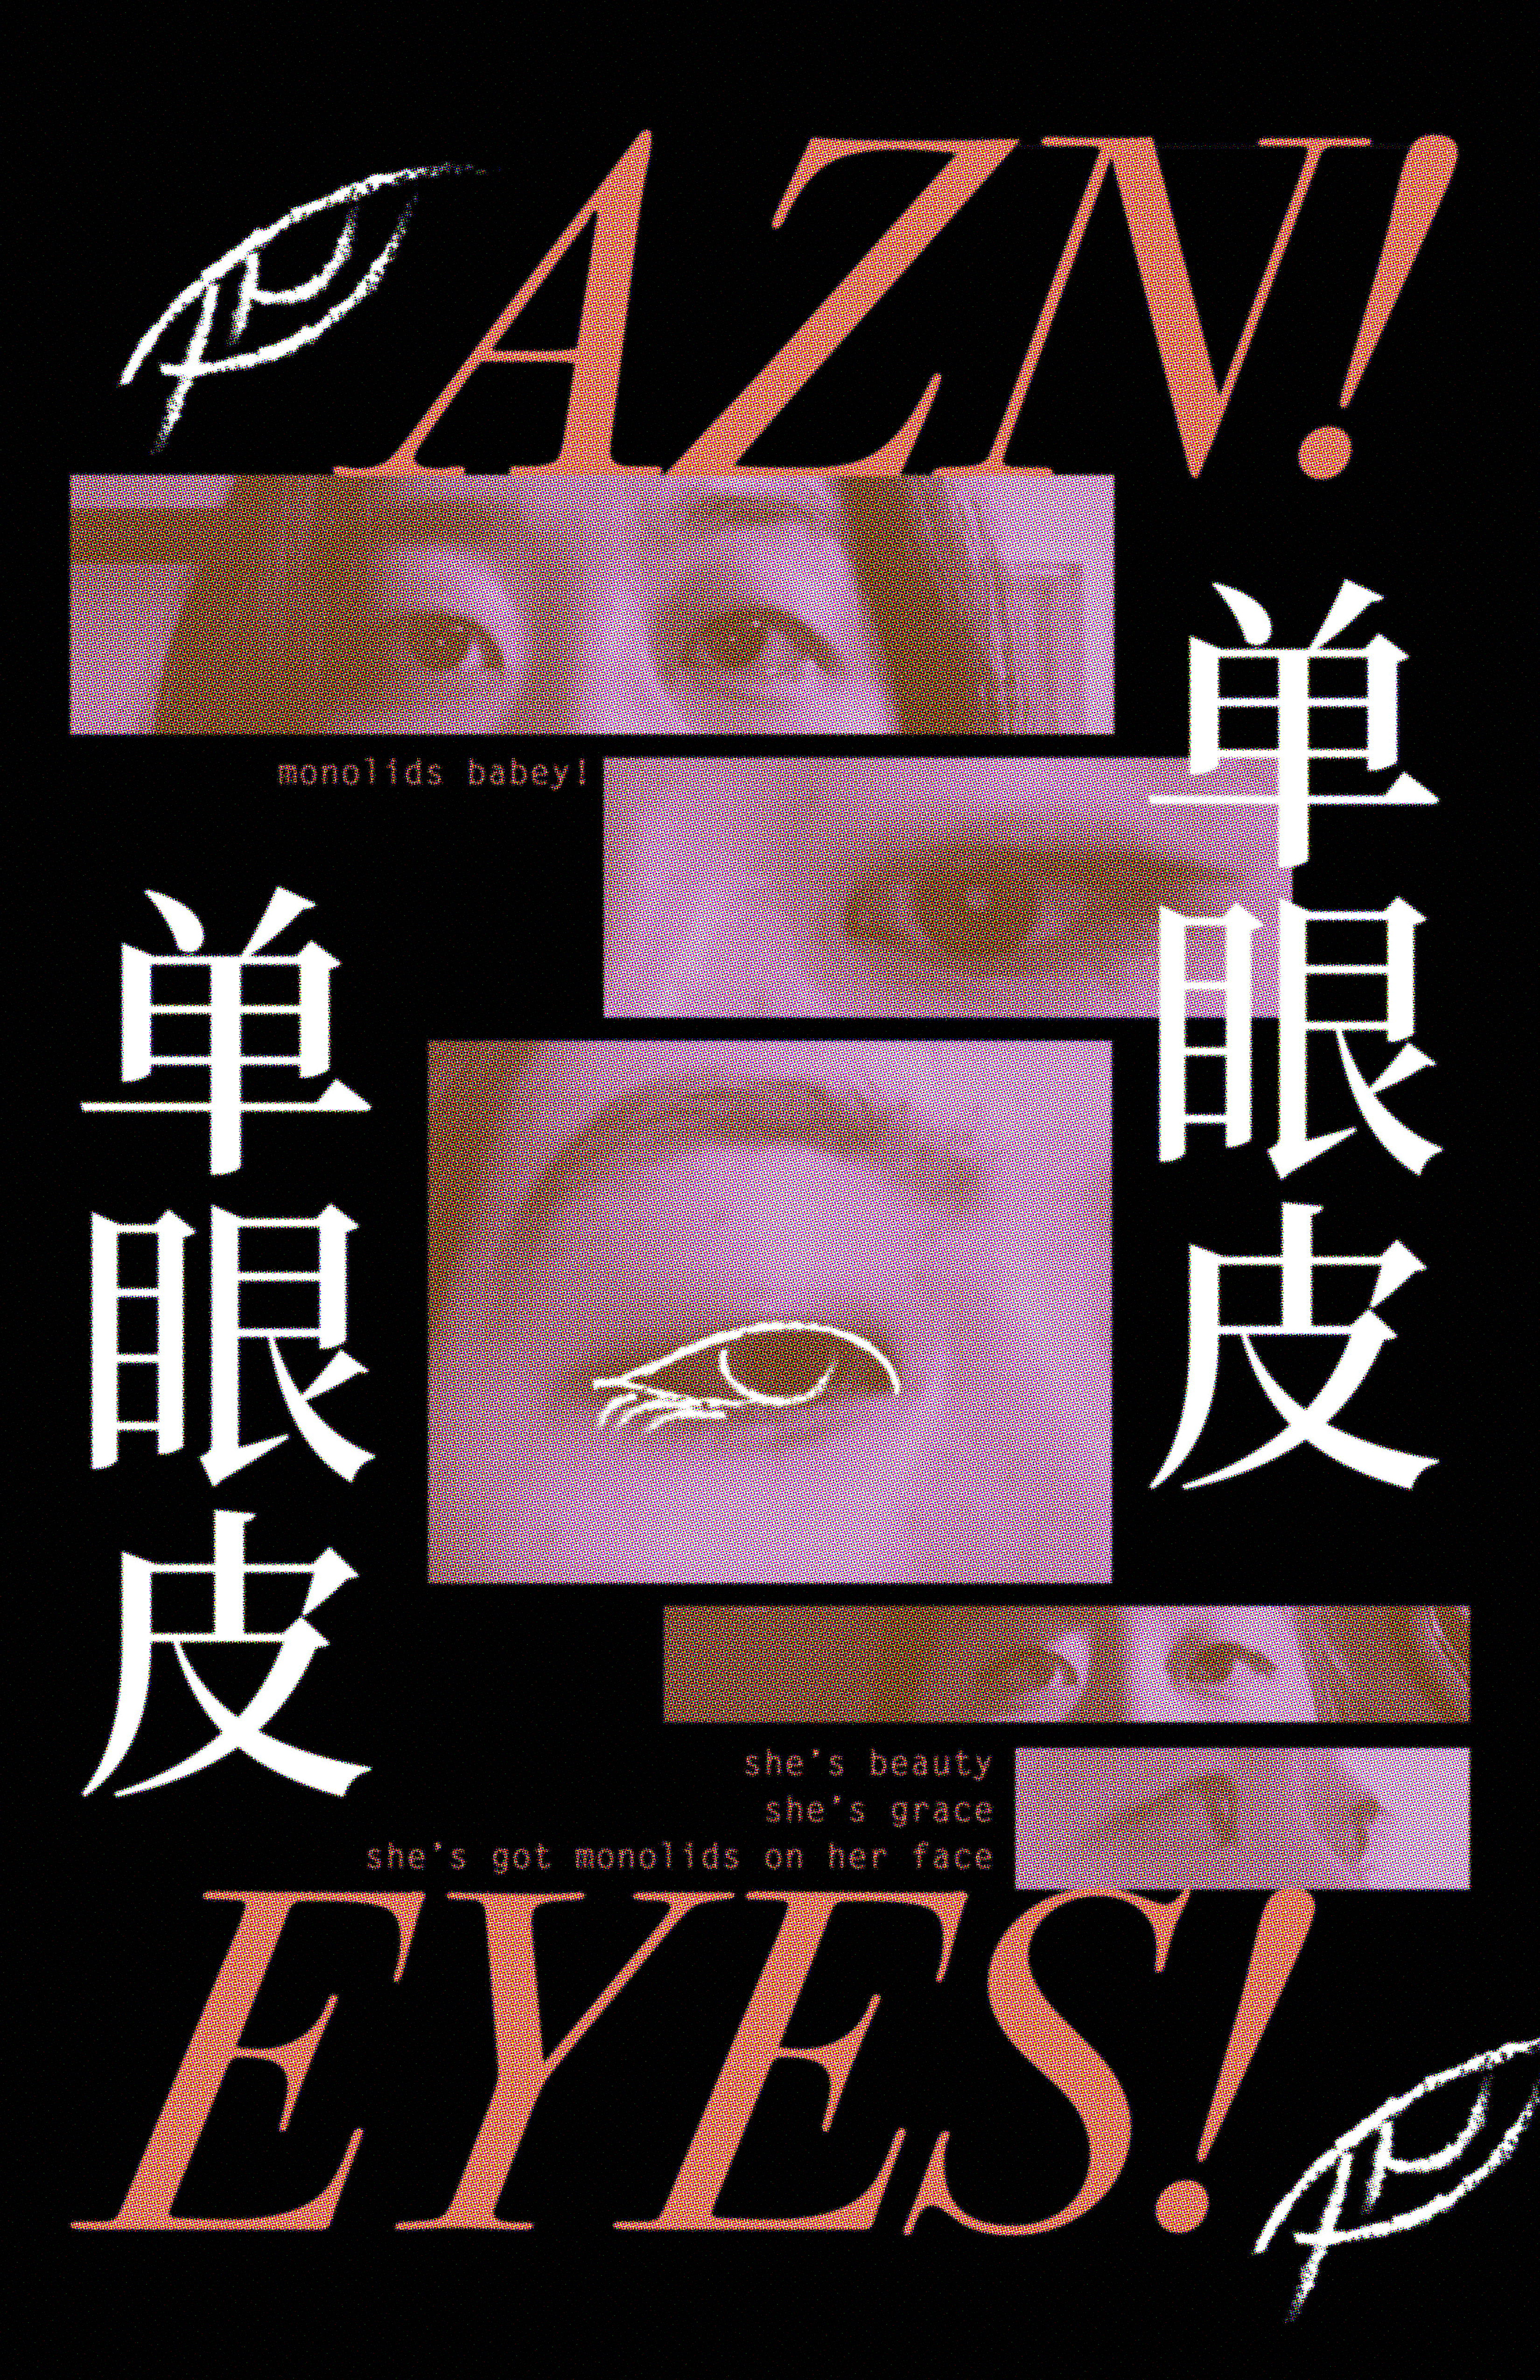 poster with the words 'azn eyes' written in large orange text on a black background.                  There are several purple toned images of my monolidded Asian eyes placed on the page, and the Chinese word for `monolid` written in large white characters vertically